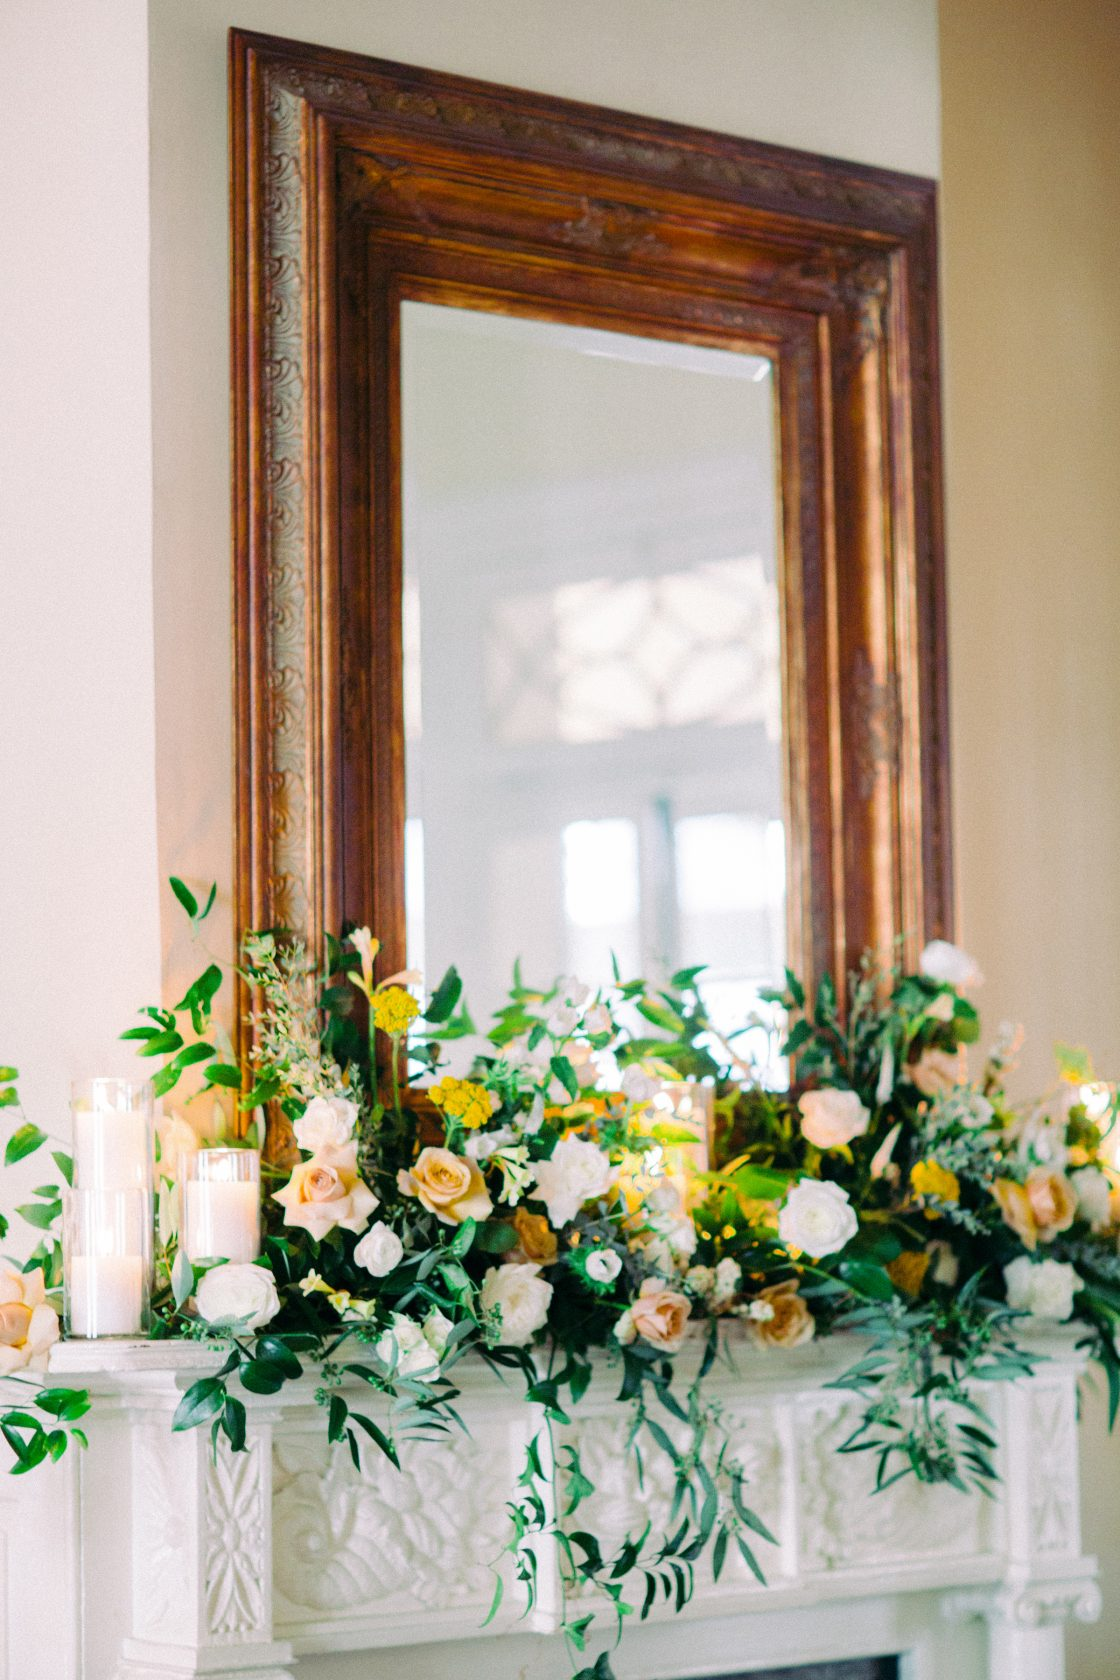 Yellow Flower Mantel Decor for Wedding